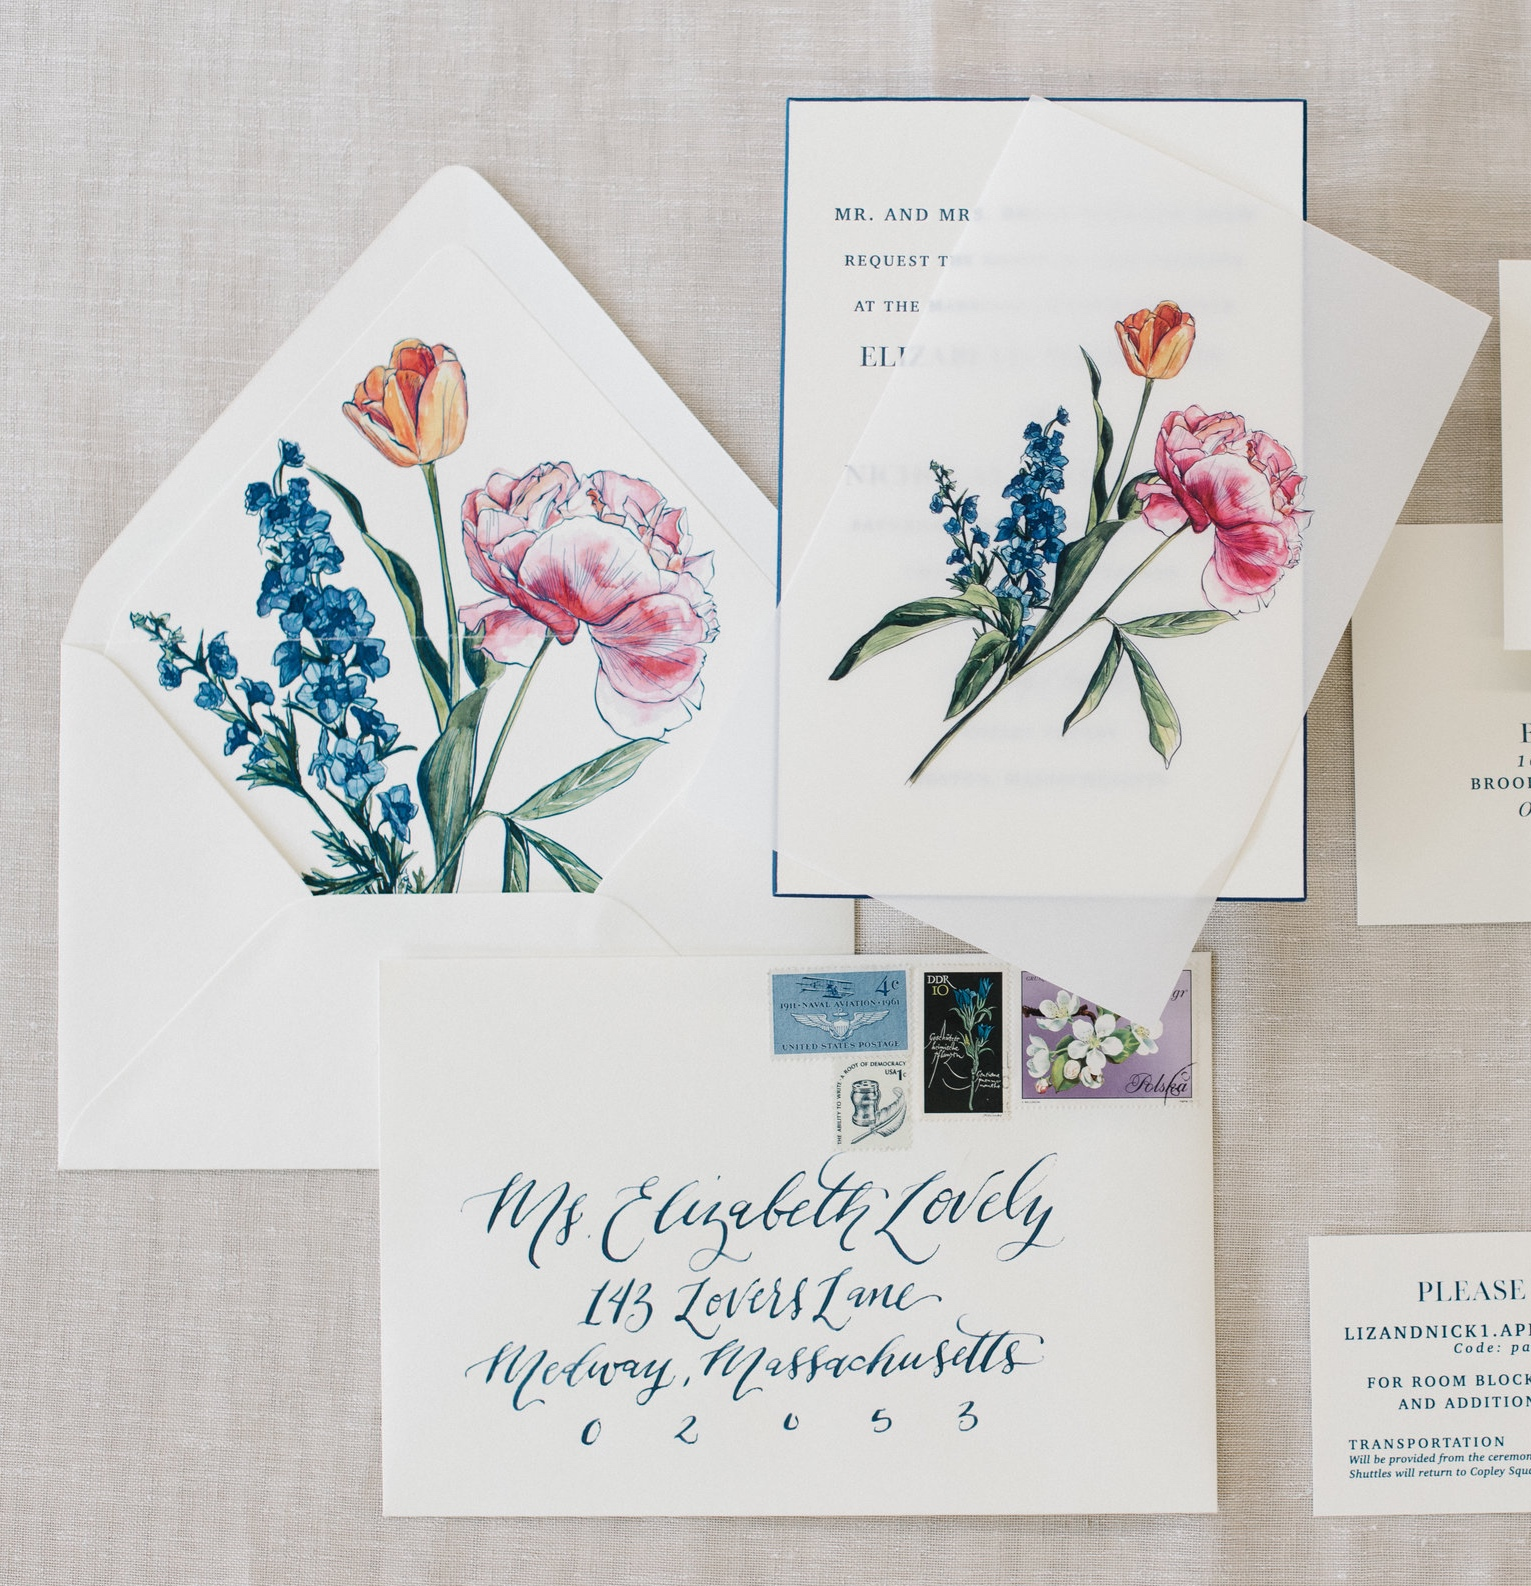 CLASSIC LETTERPRESS WITH VELLUM FLORAL OVERLAY WEDDING INVITATIONS